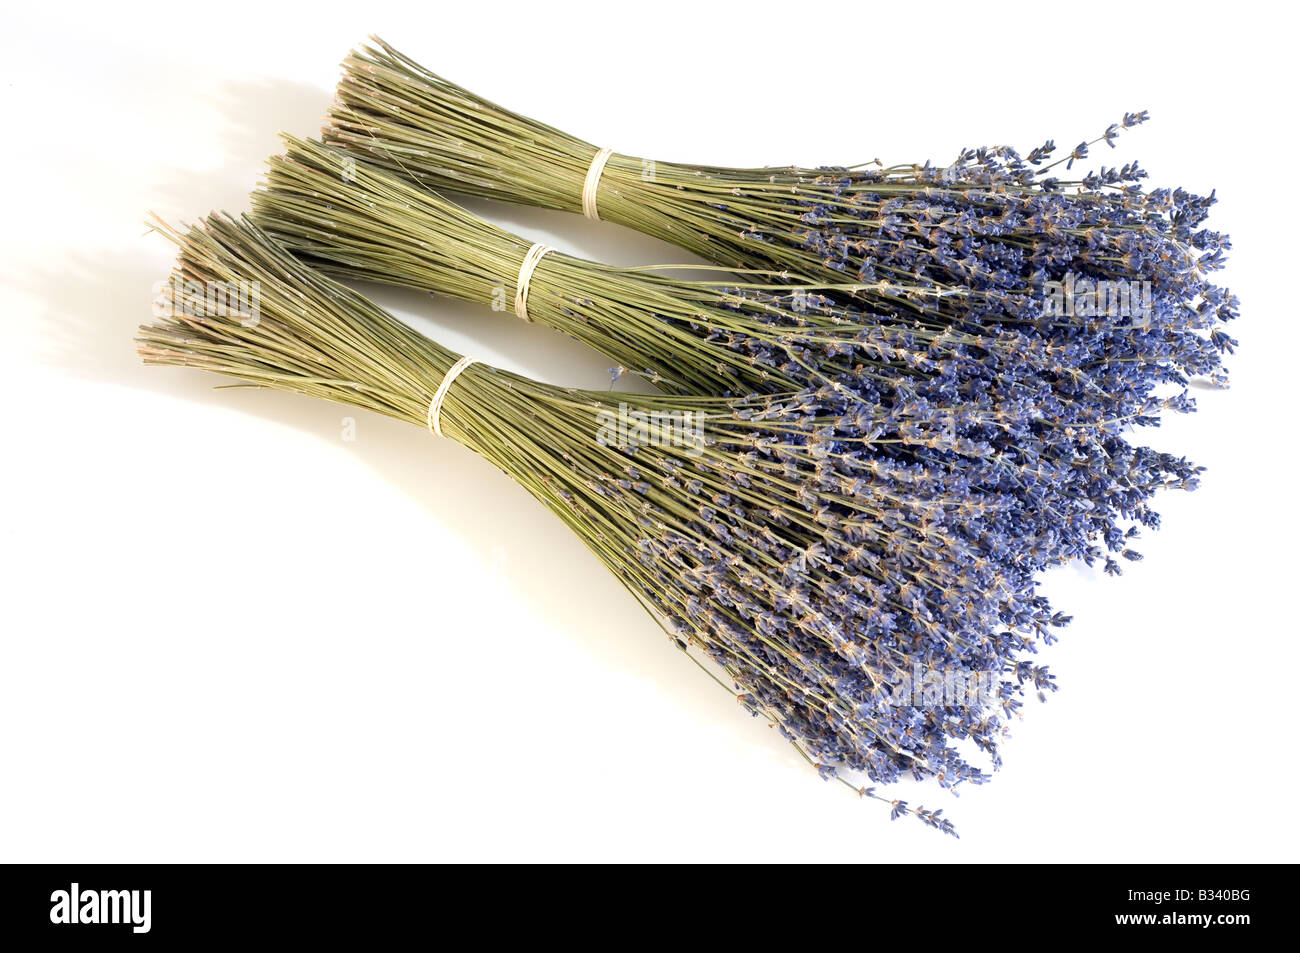 Three bunches of dried lavender stems - Stock Image